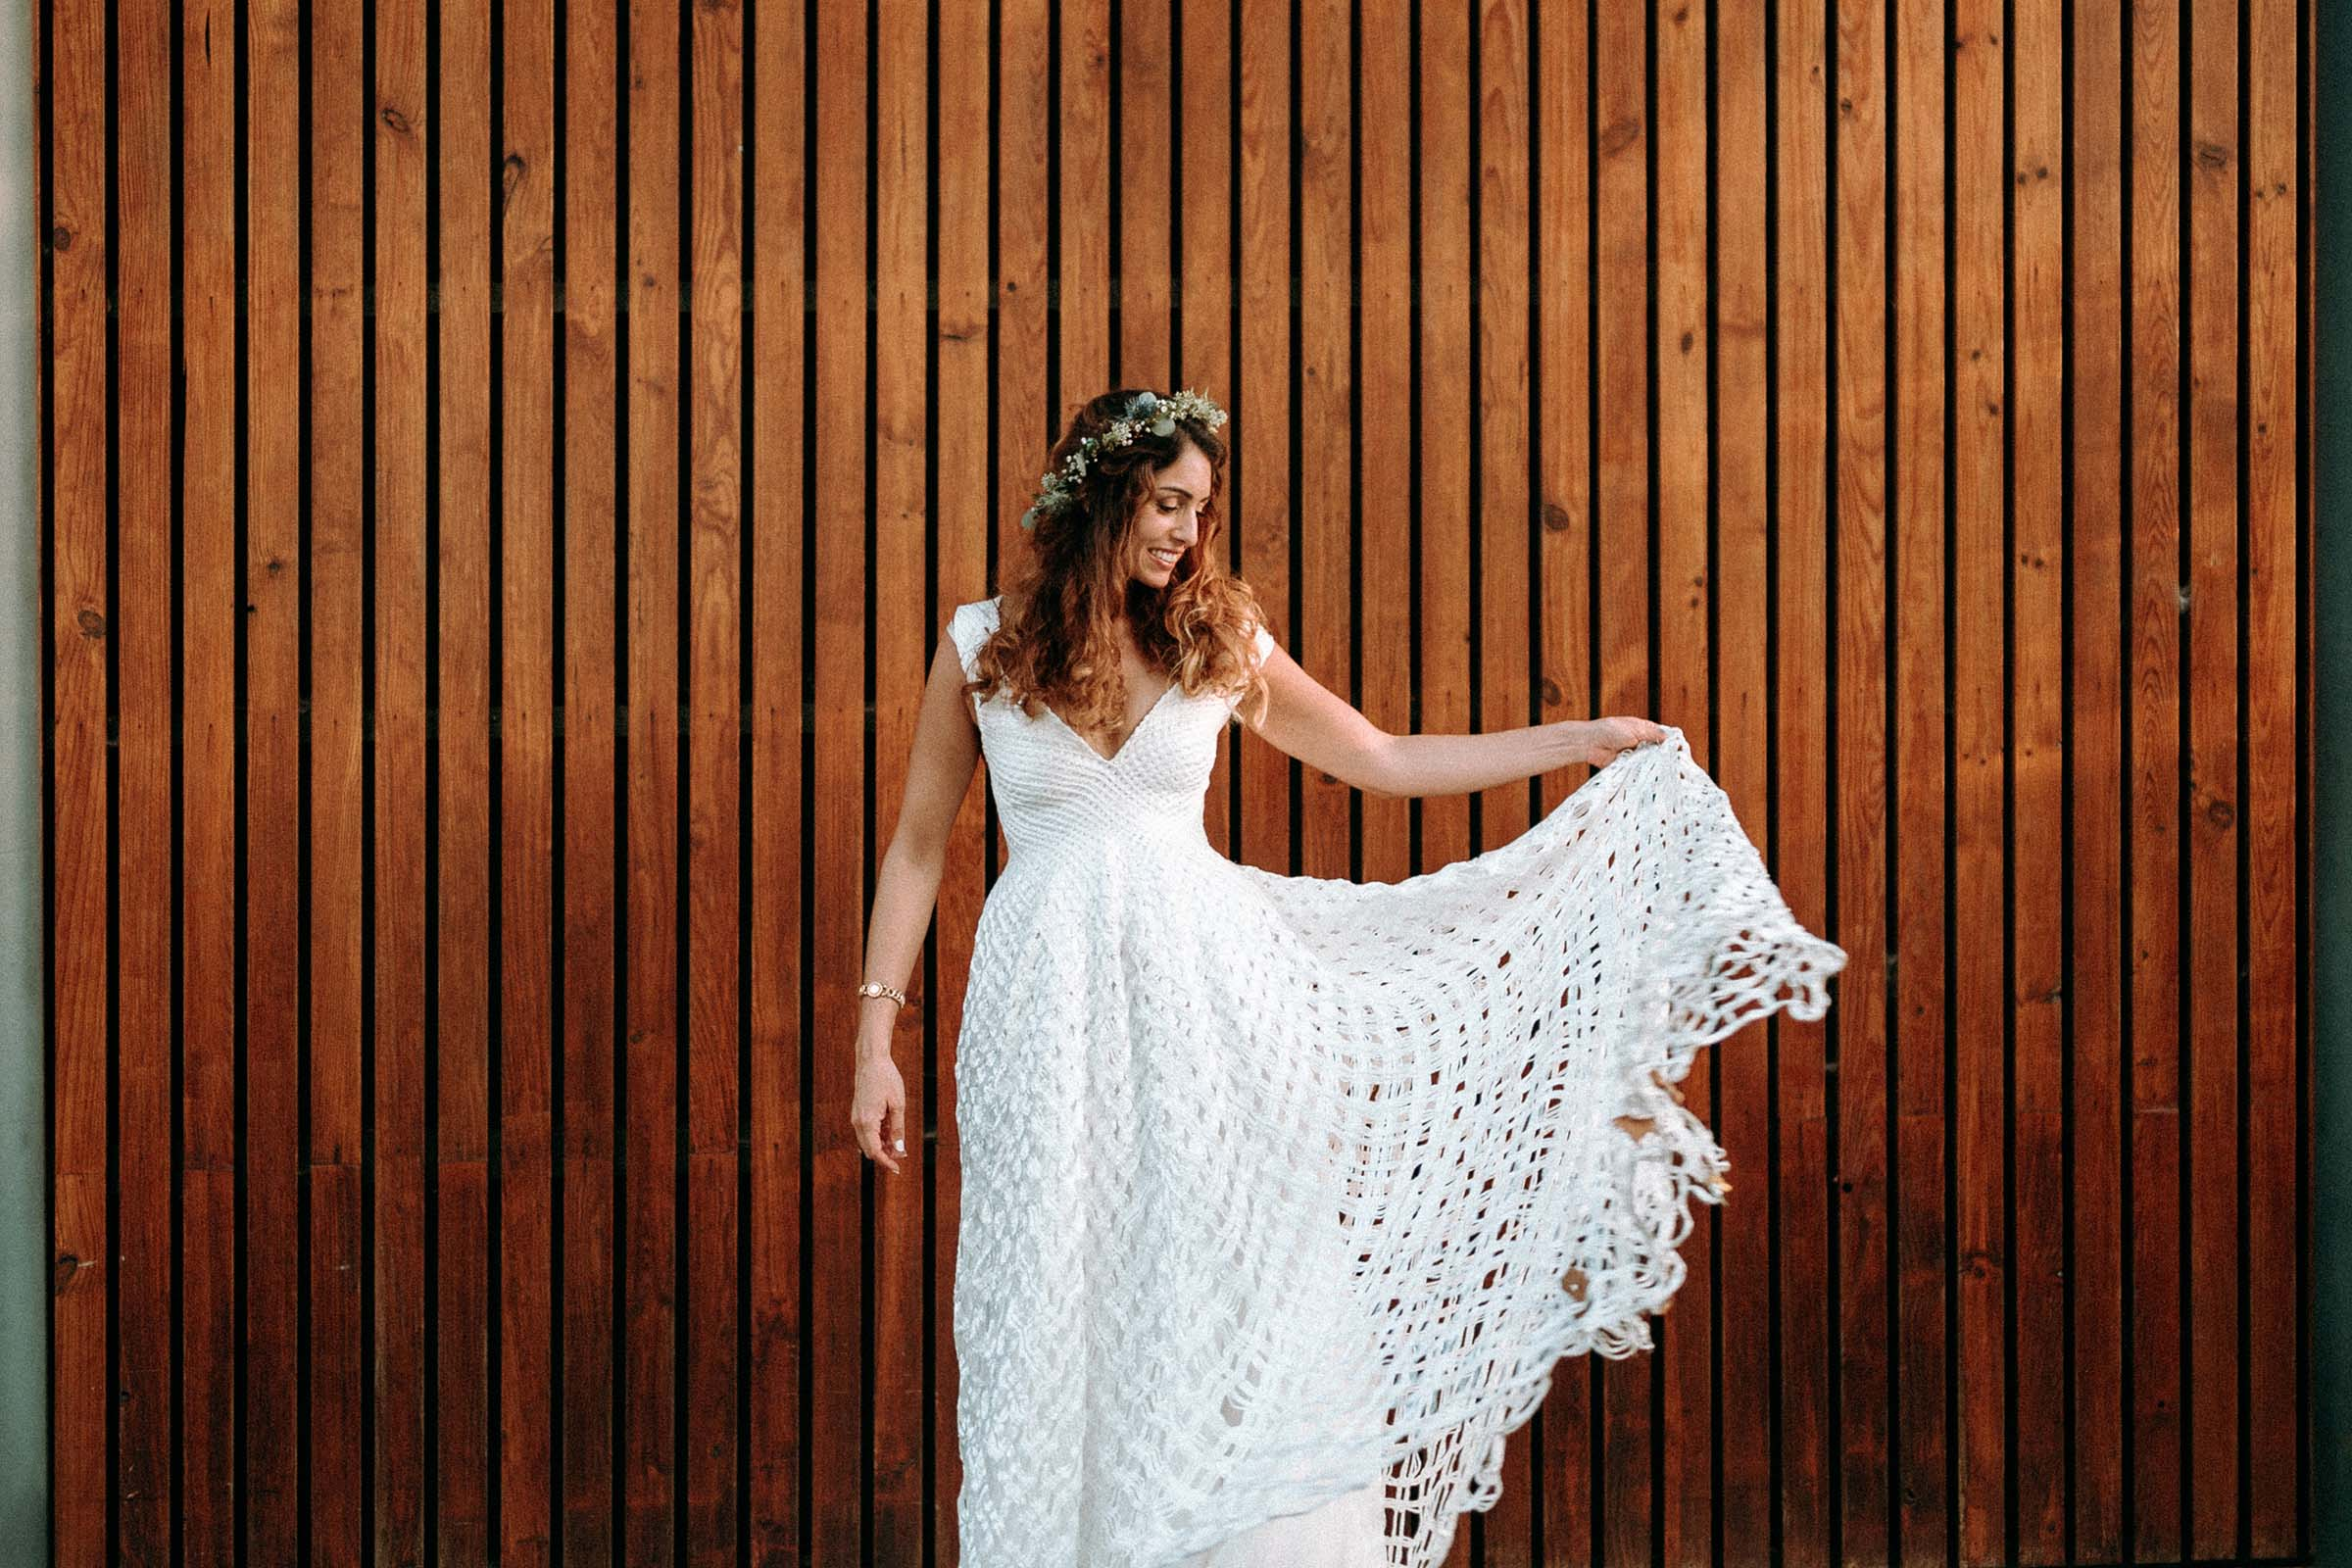 bride with alternative wedding dress against a wooden wall